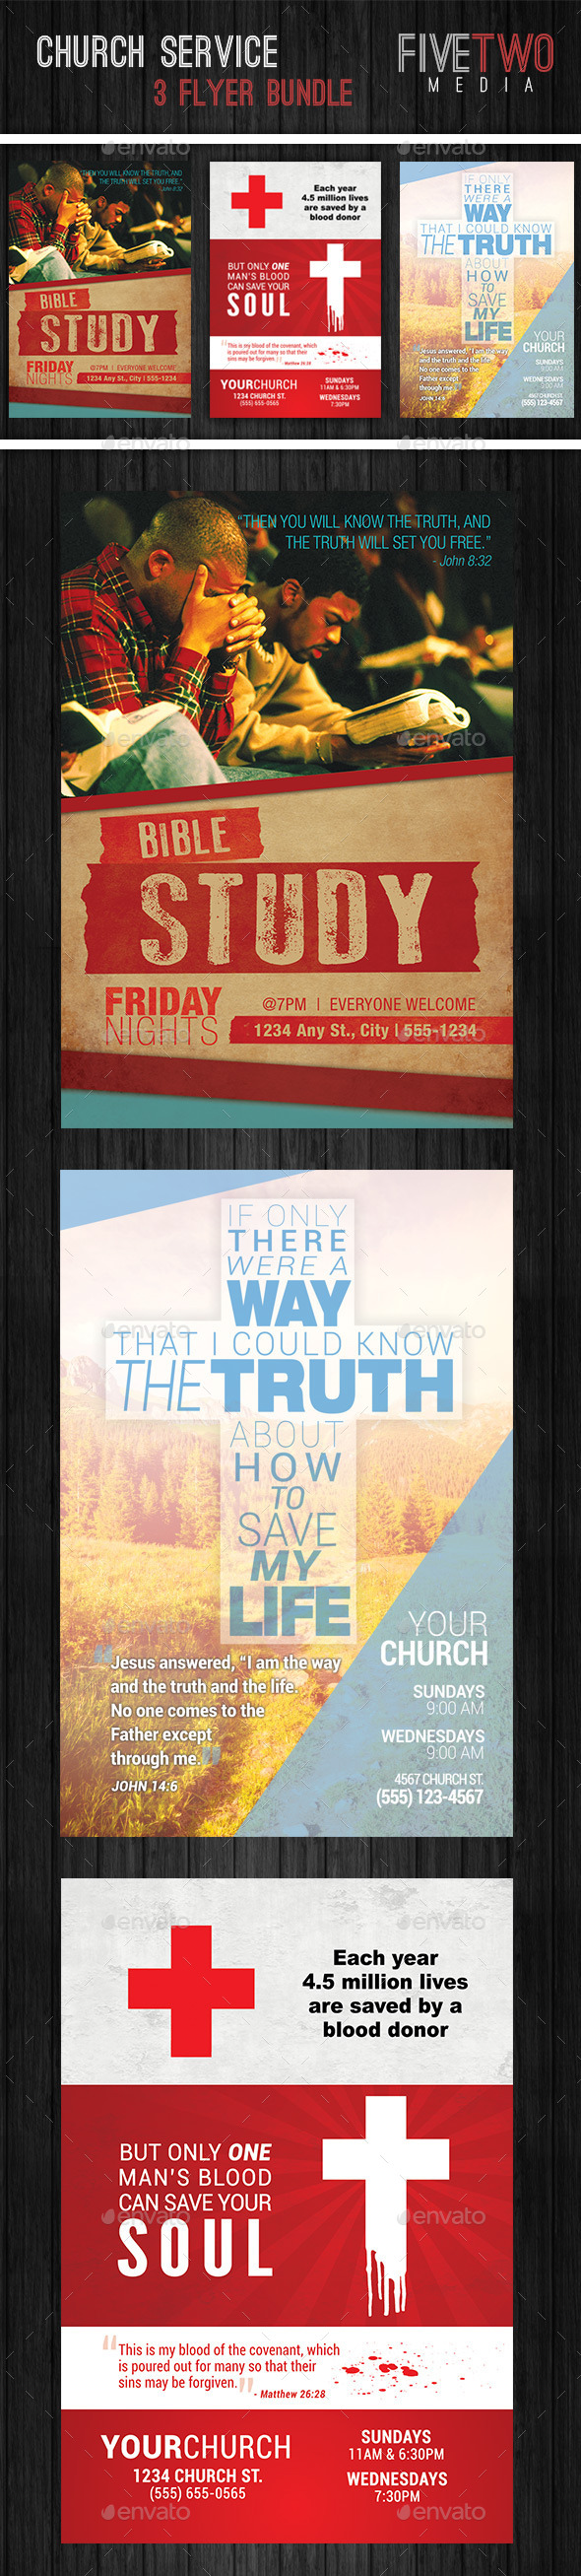 Church Service Flyer Bundle - Church Flyers